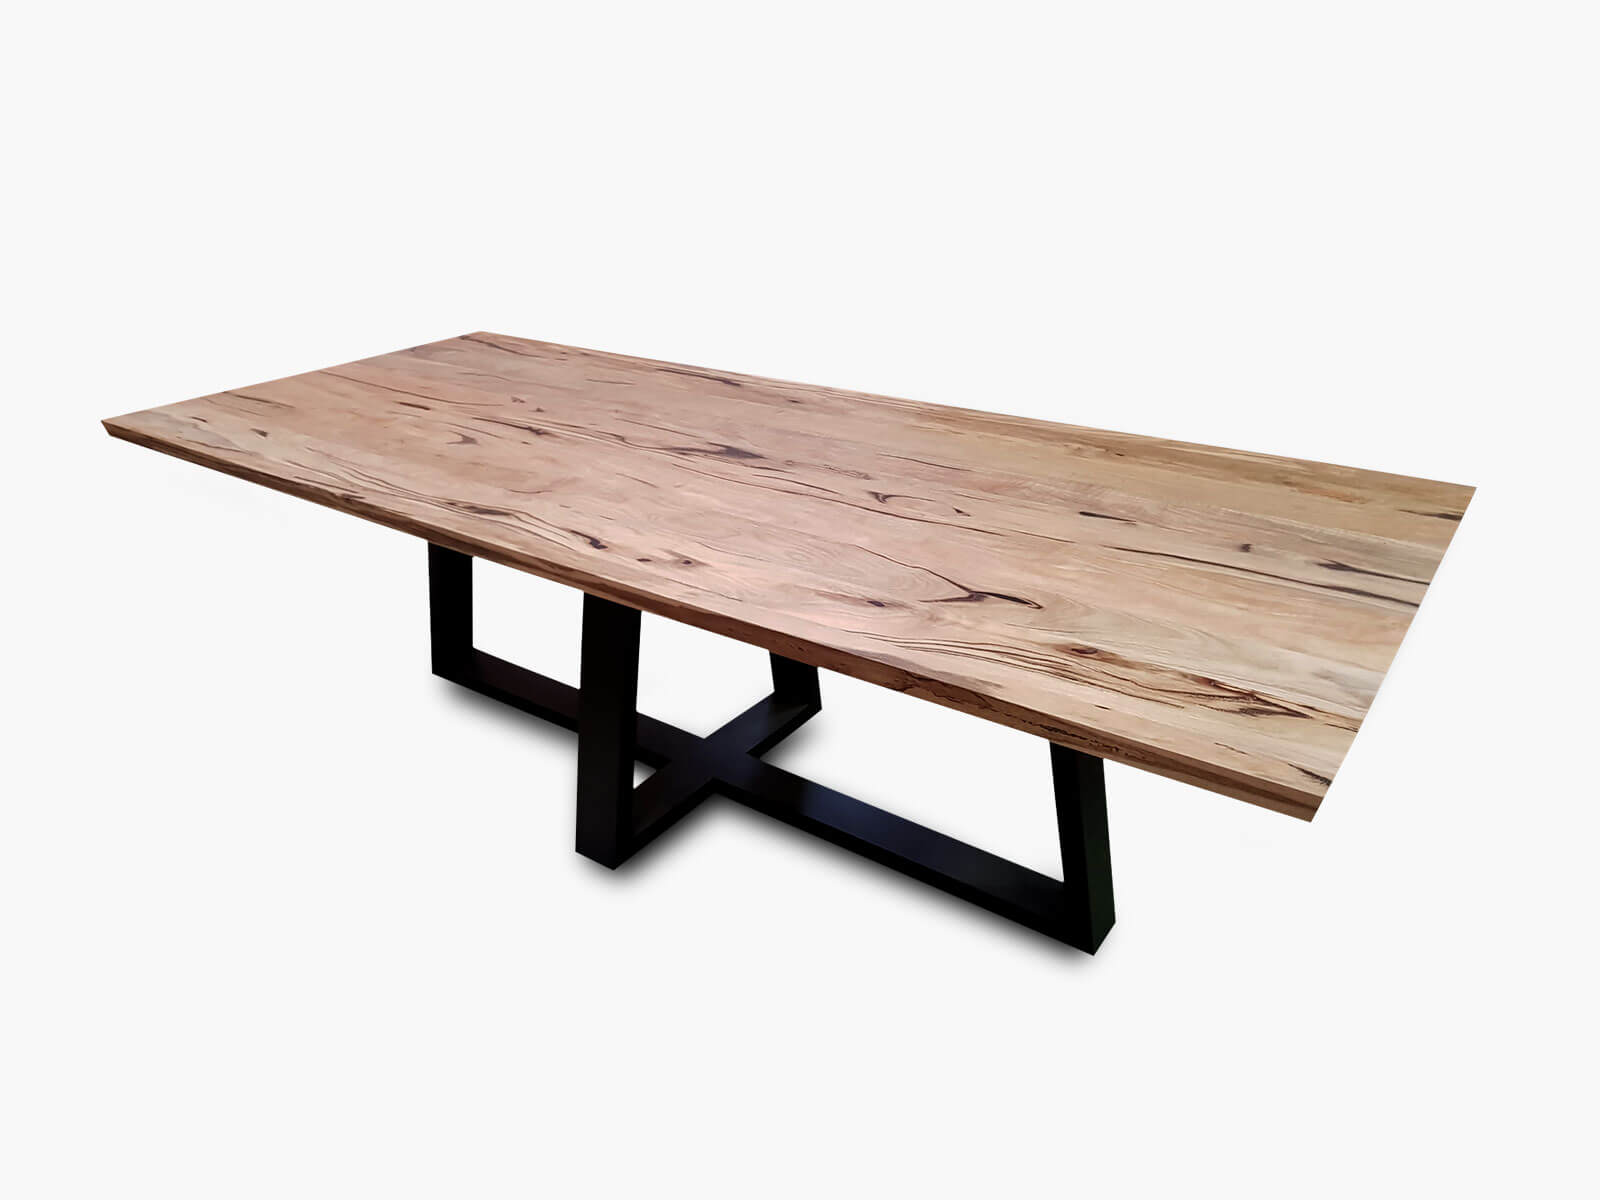 Yallinyup-Dining Timber Furniture